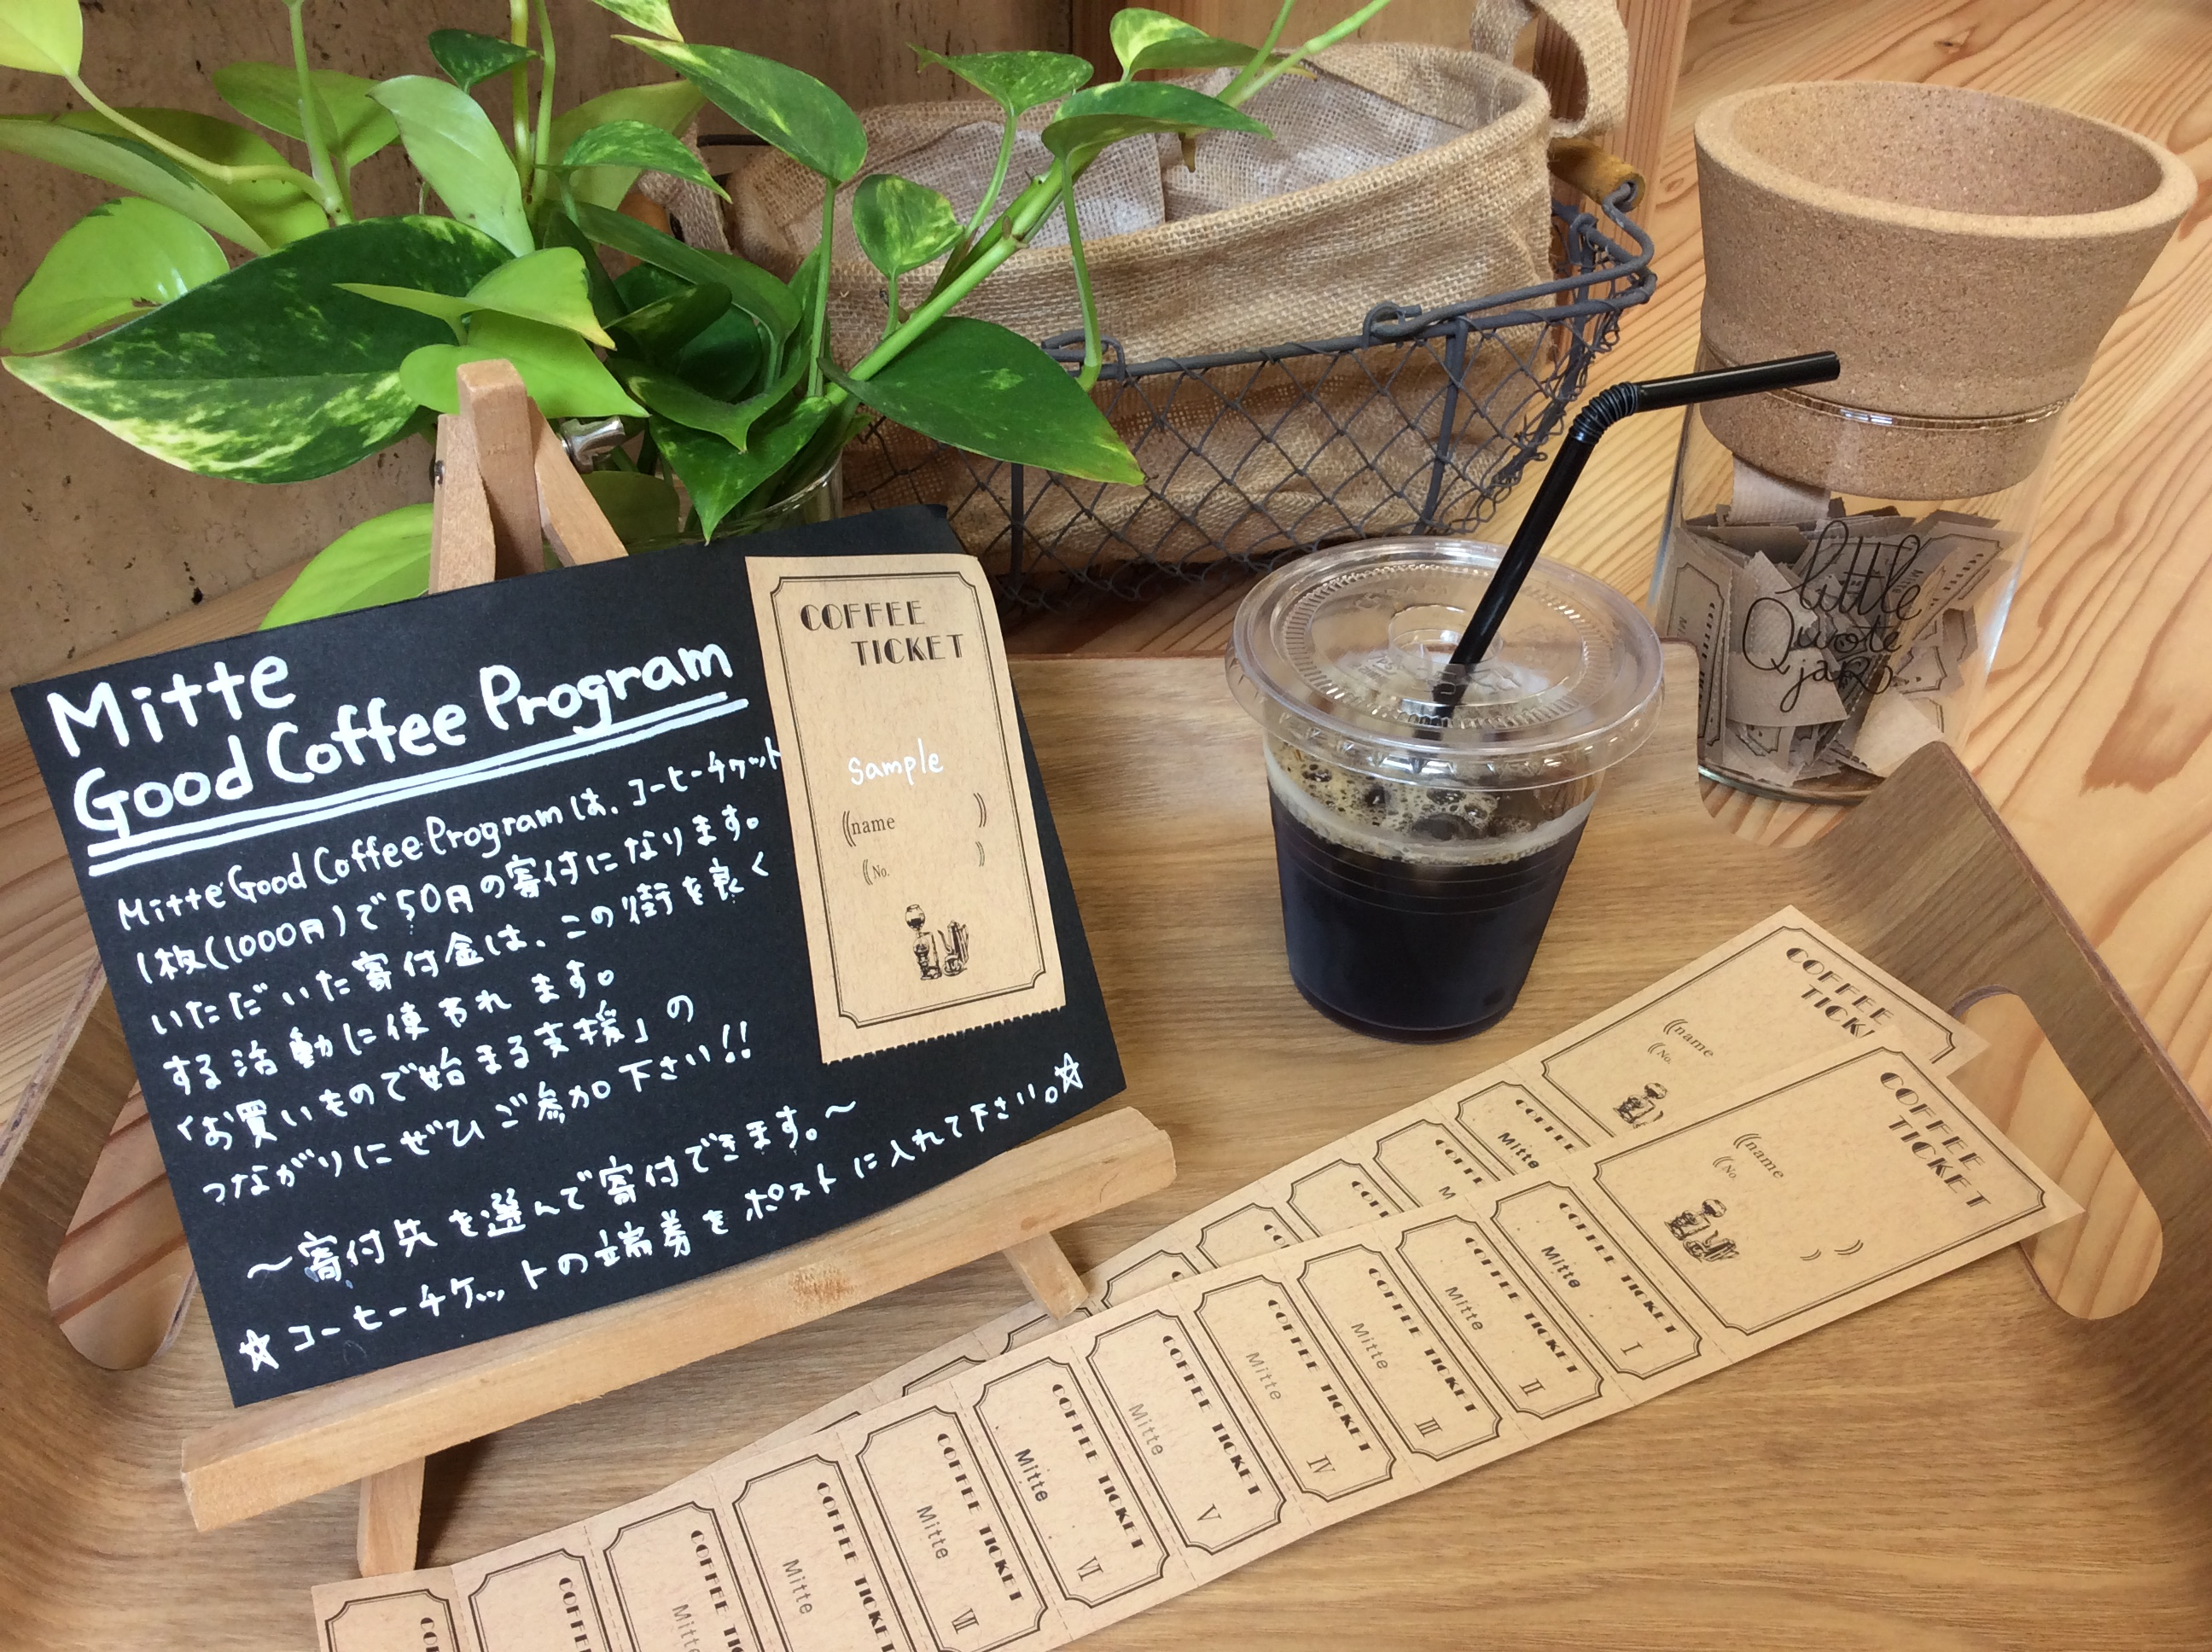 Mitte Good Coffee Program 1月のご報告